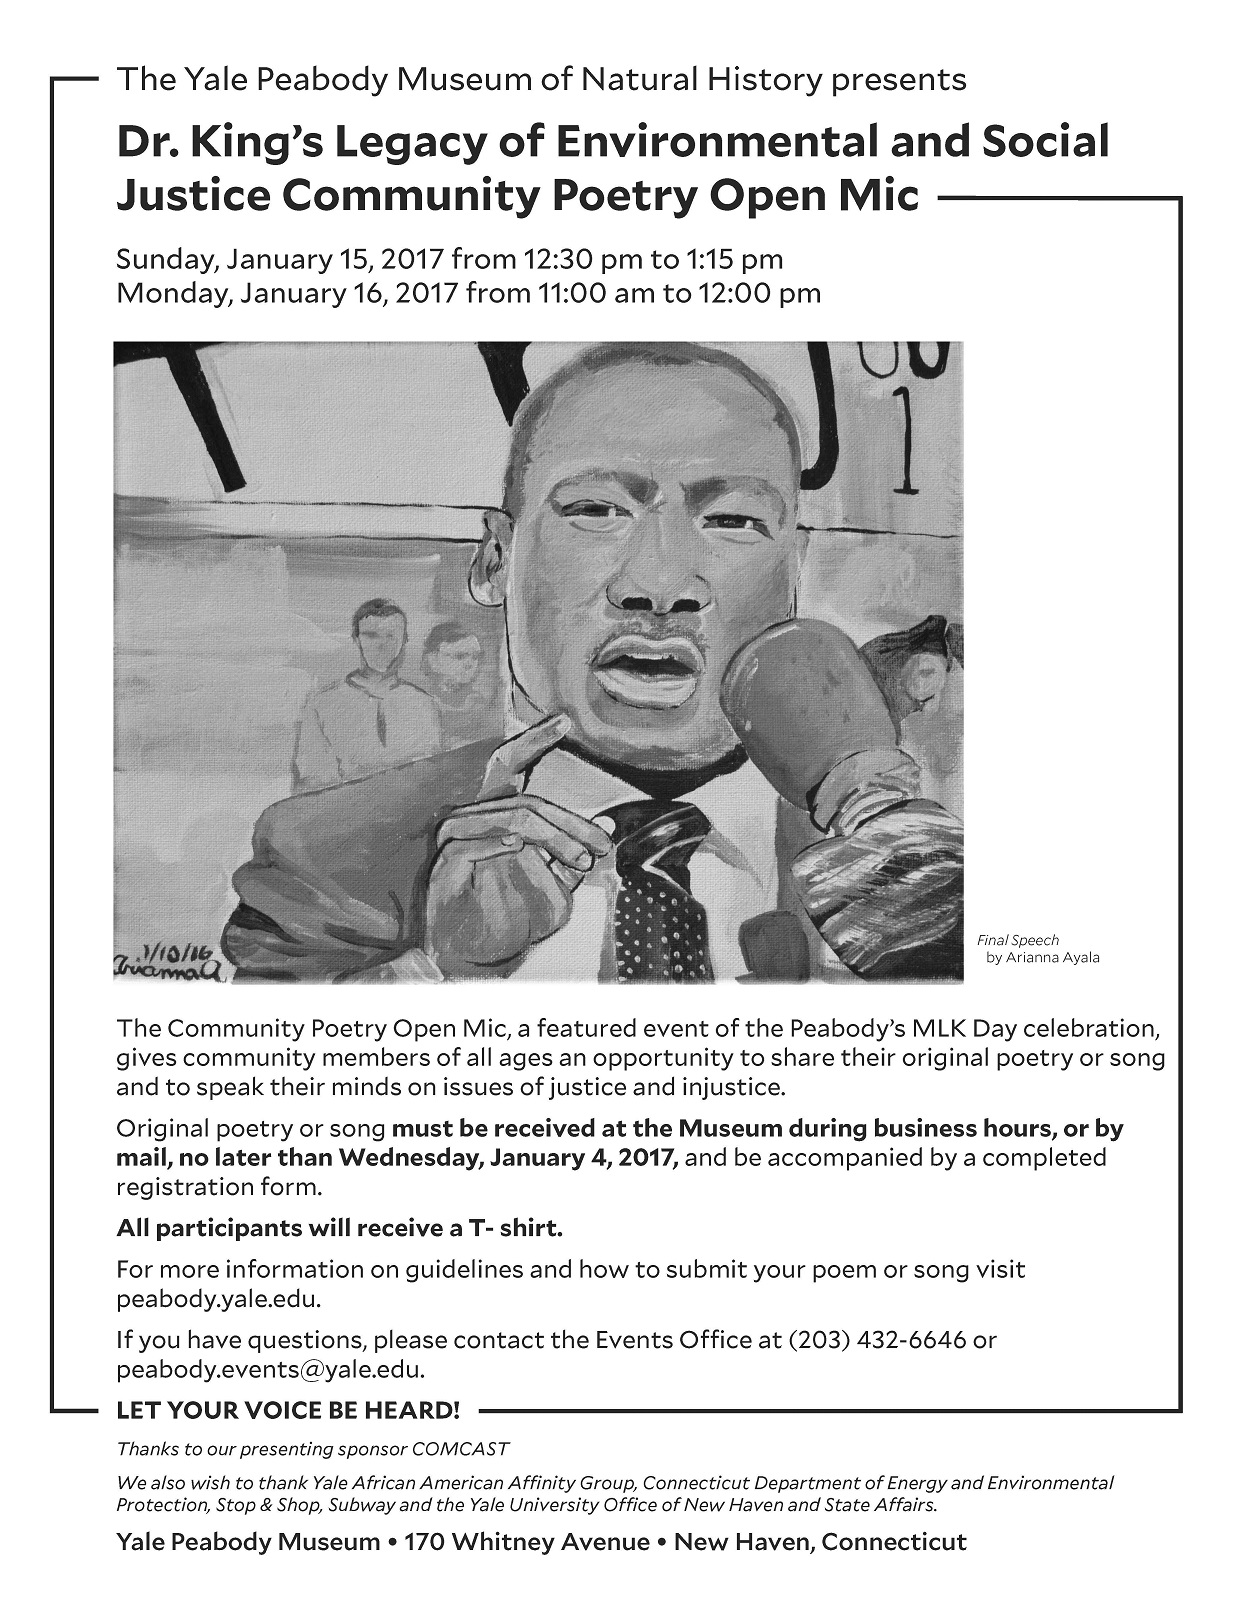 mlk-open-mic-flyer